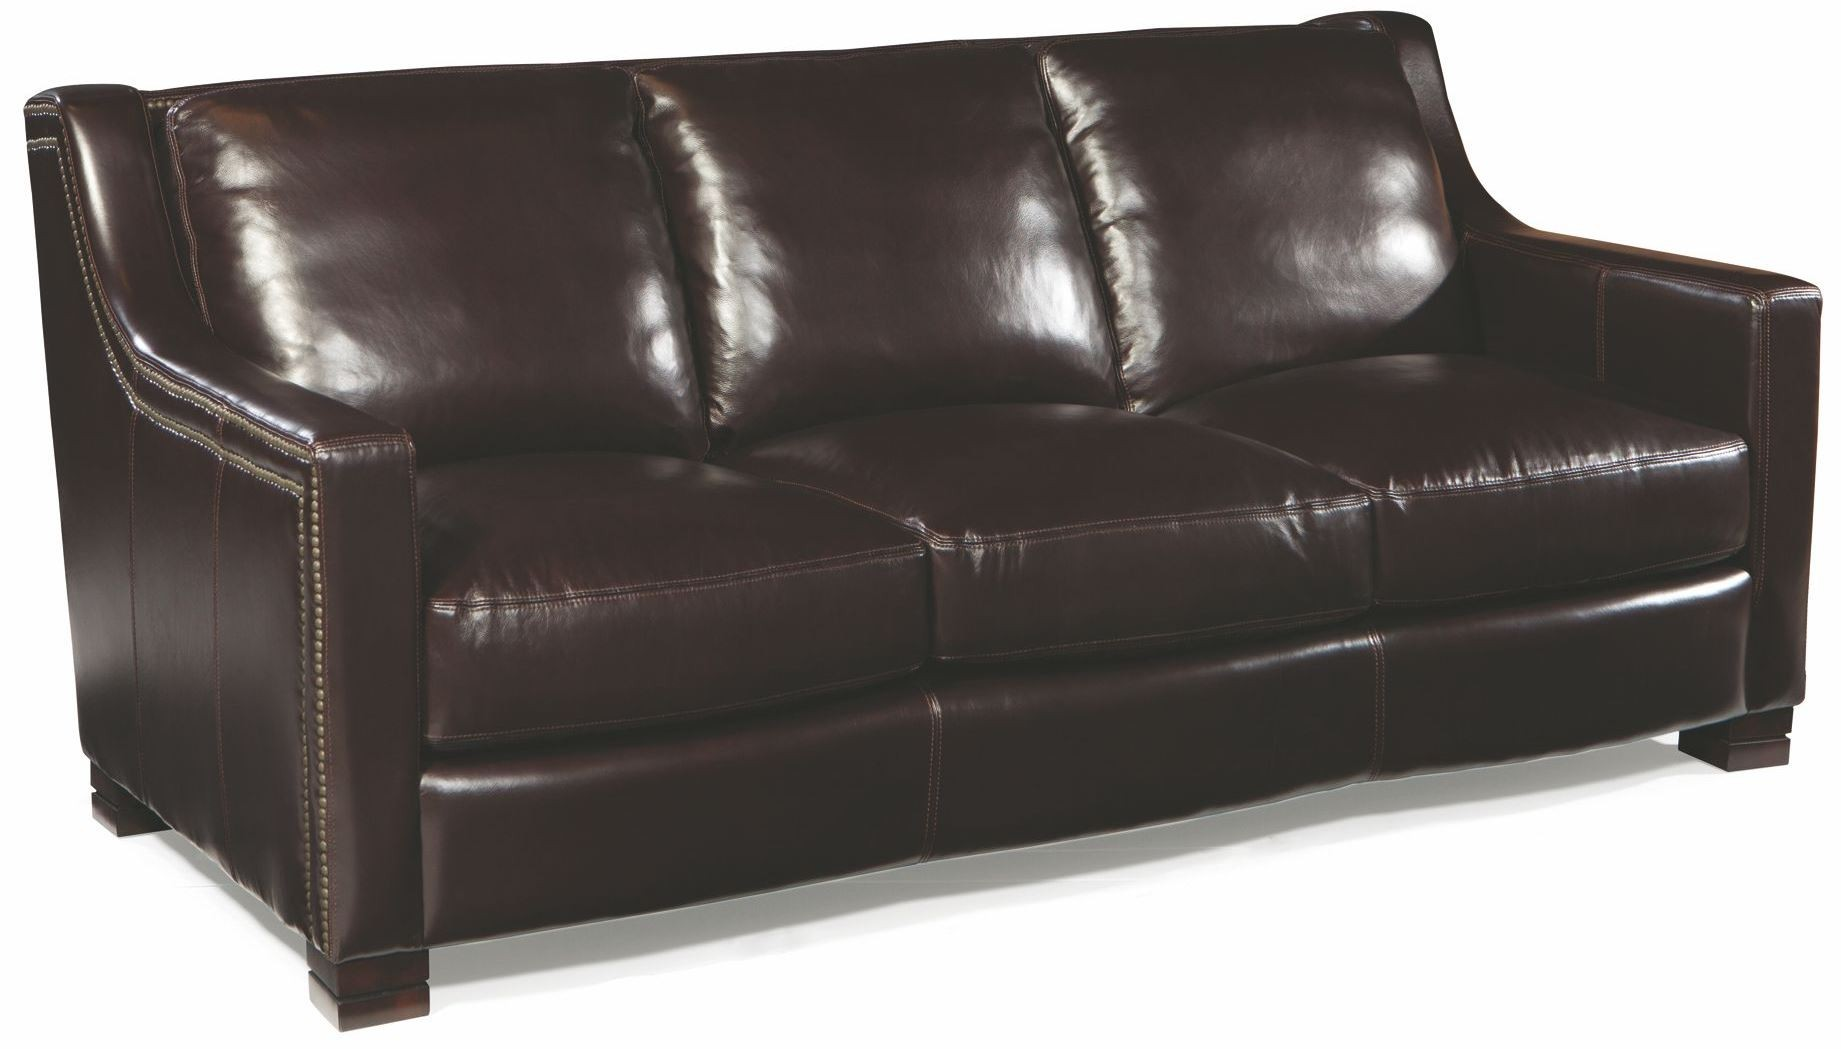 cleaning leather sofa cushions buying a remove urine smell from couch on